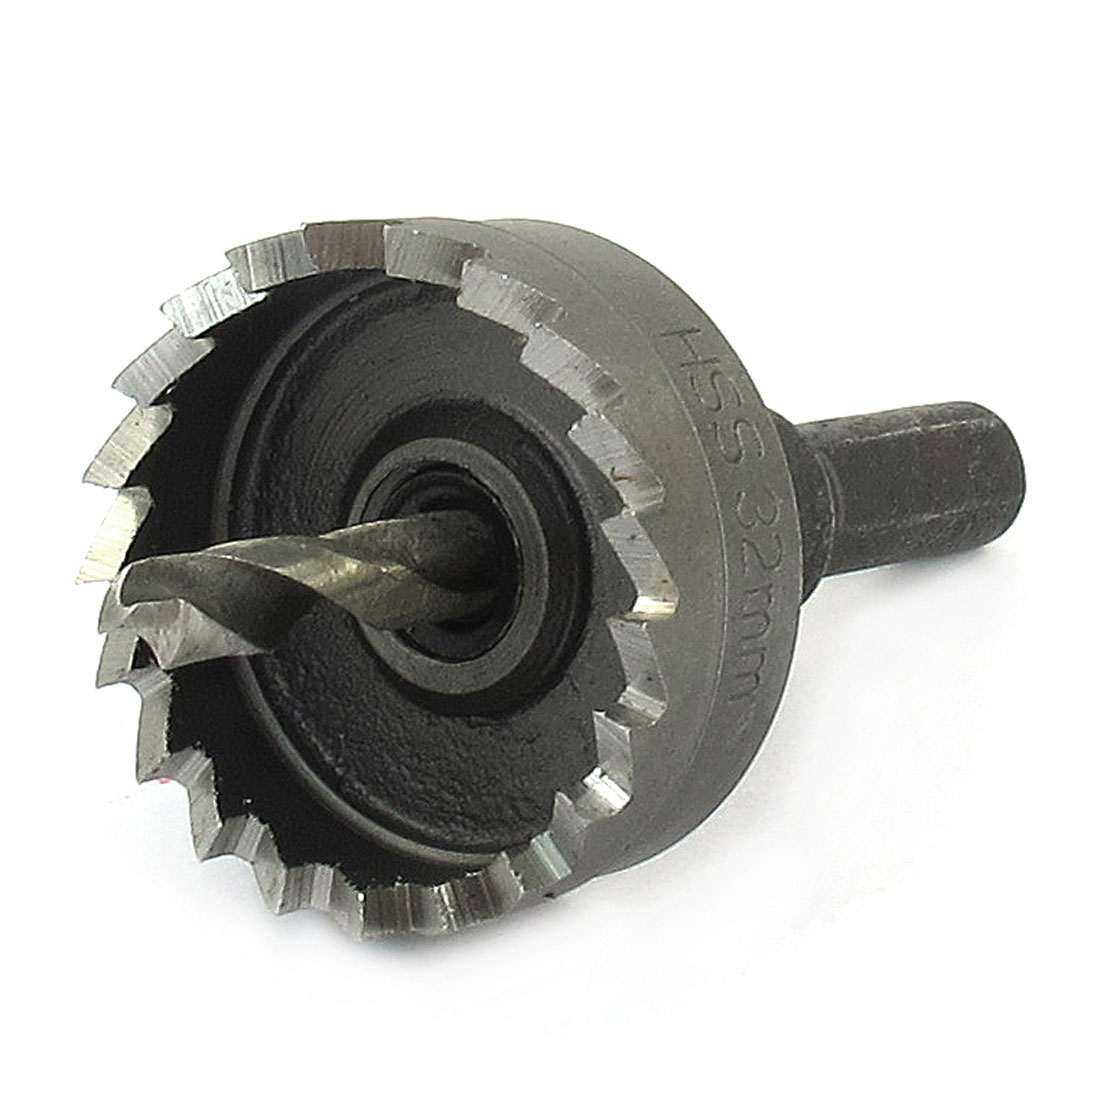 32mm Iron Cutter Metal Twist Drill Bit Hole Saw Tool Gray